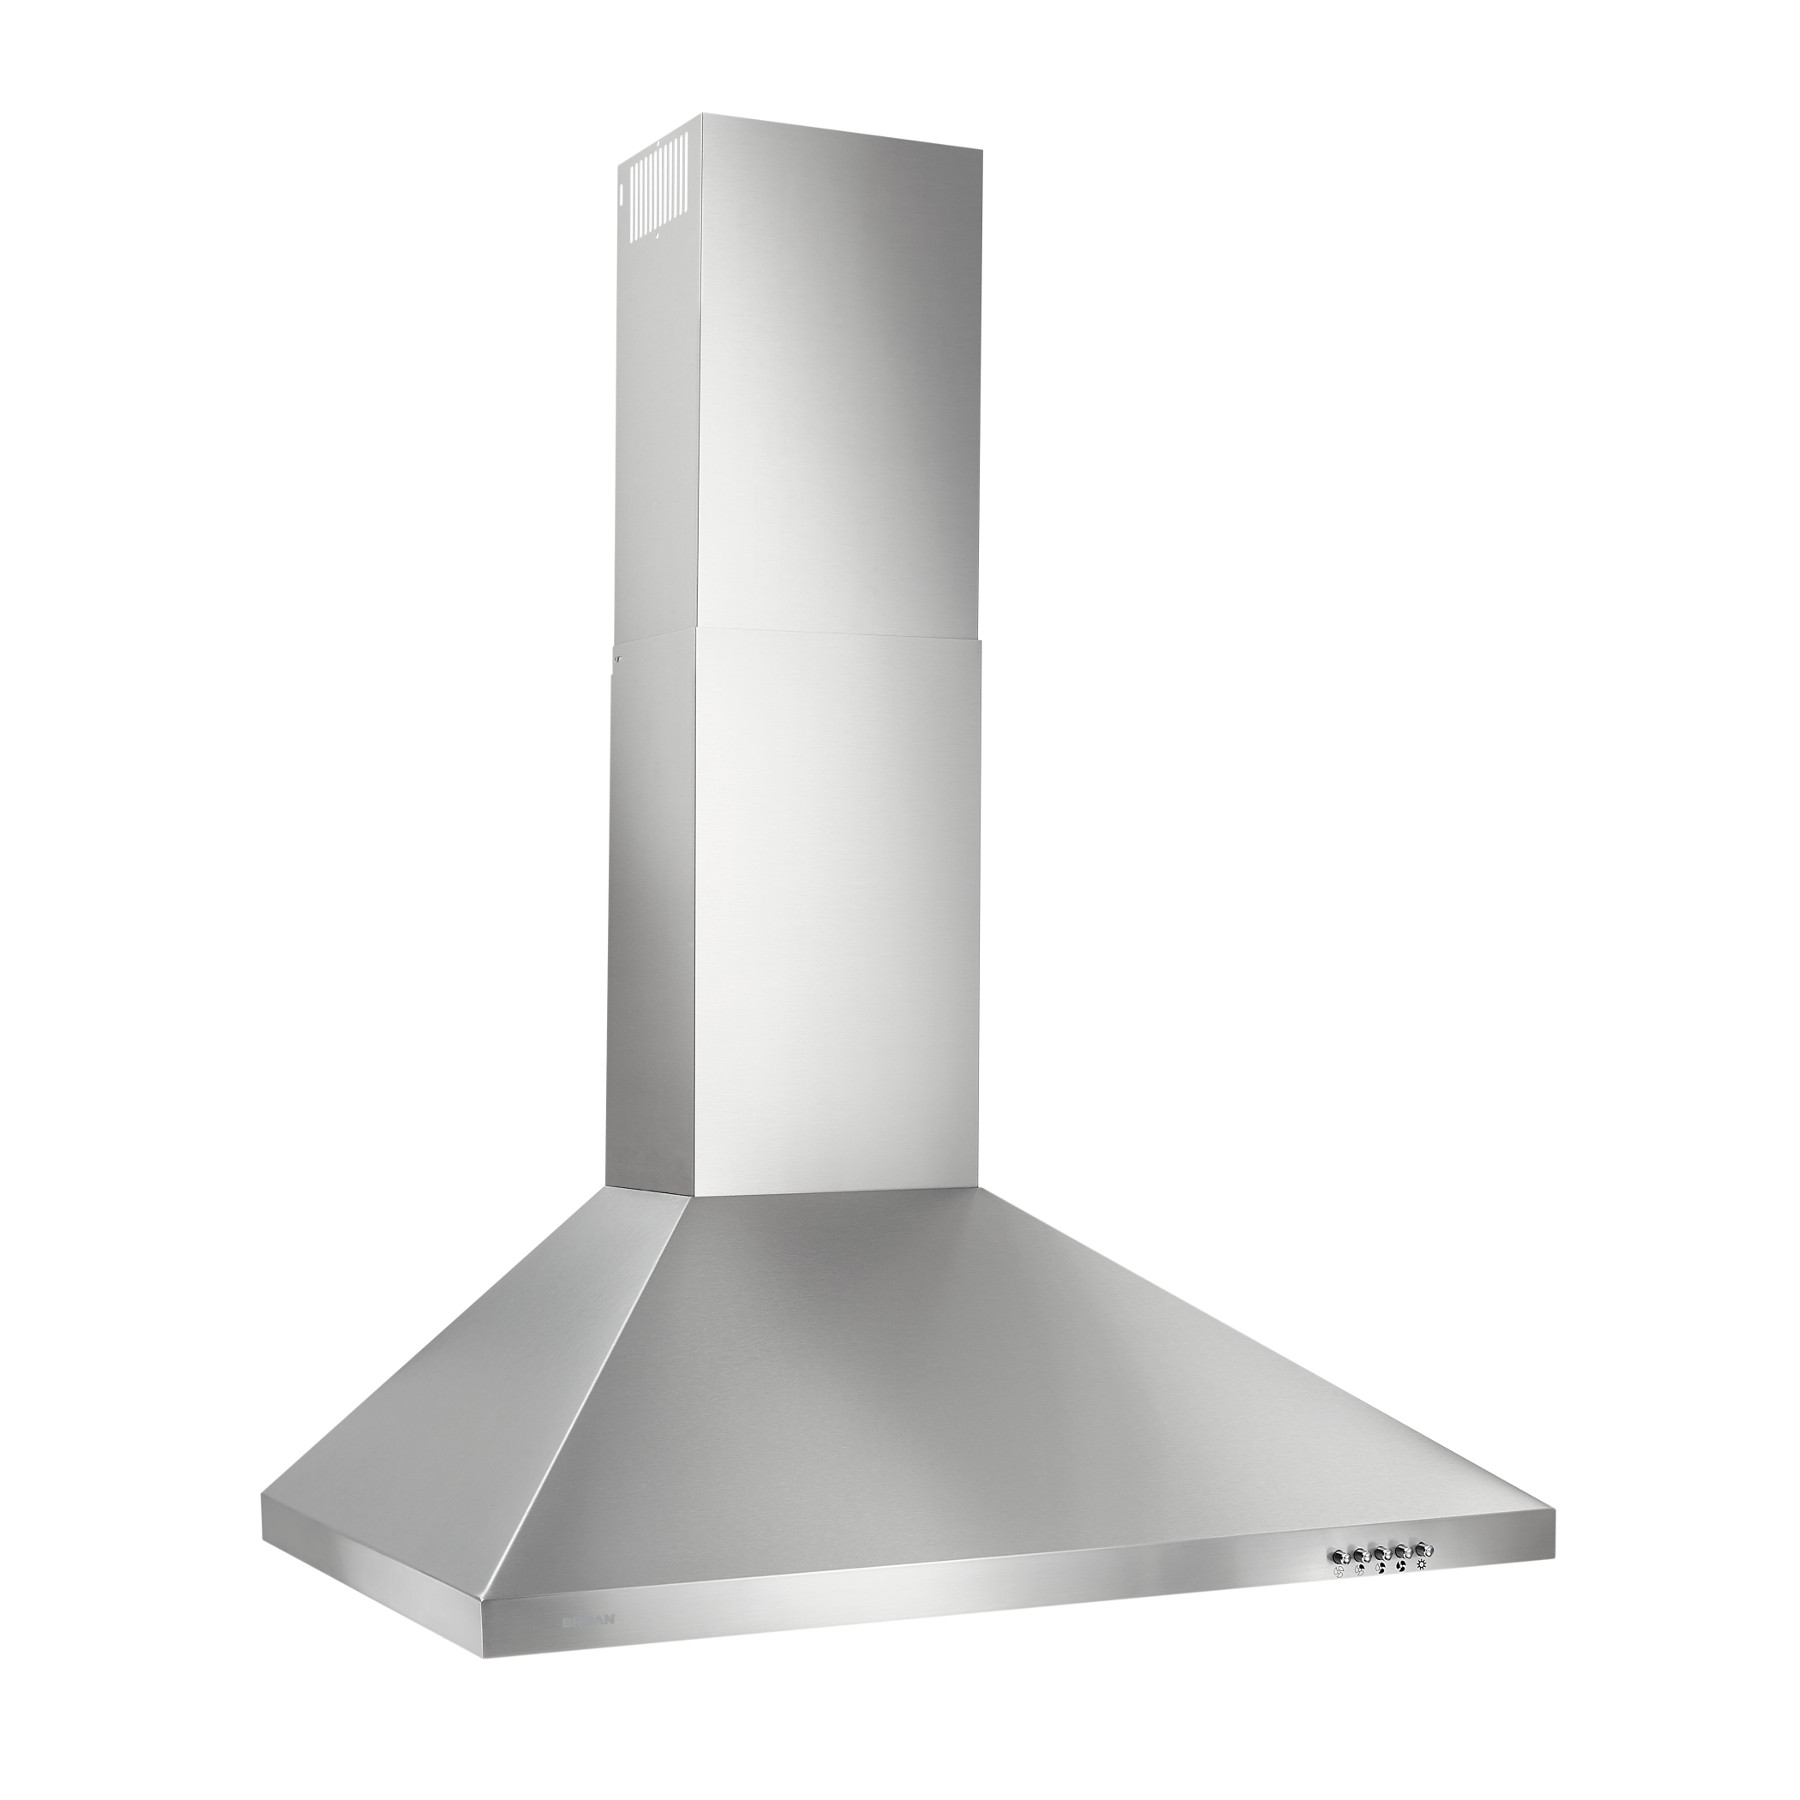 Broan® 30-Inch Convertible European Style Wall-Mounted Chimney Range Hood, 390 MAX Blower CFM, Stainless Steel LED Light